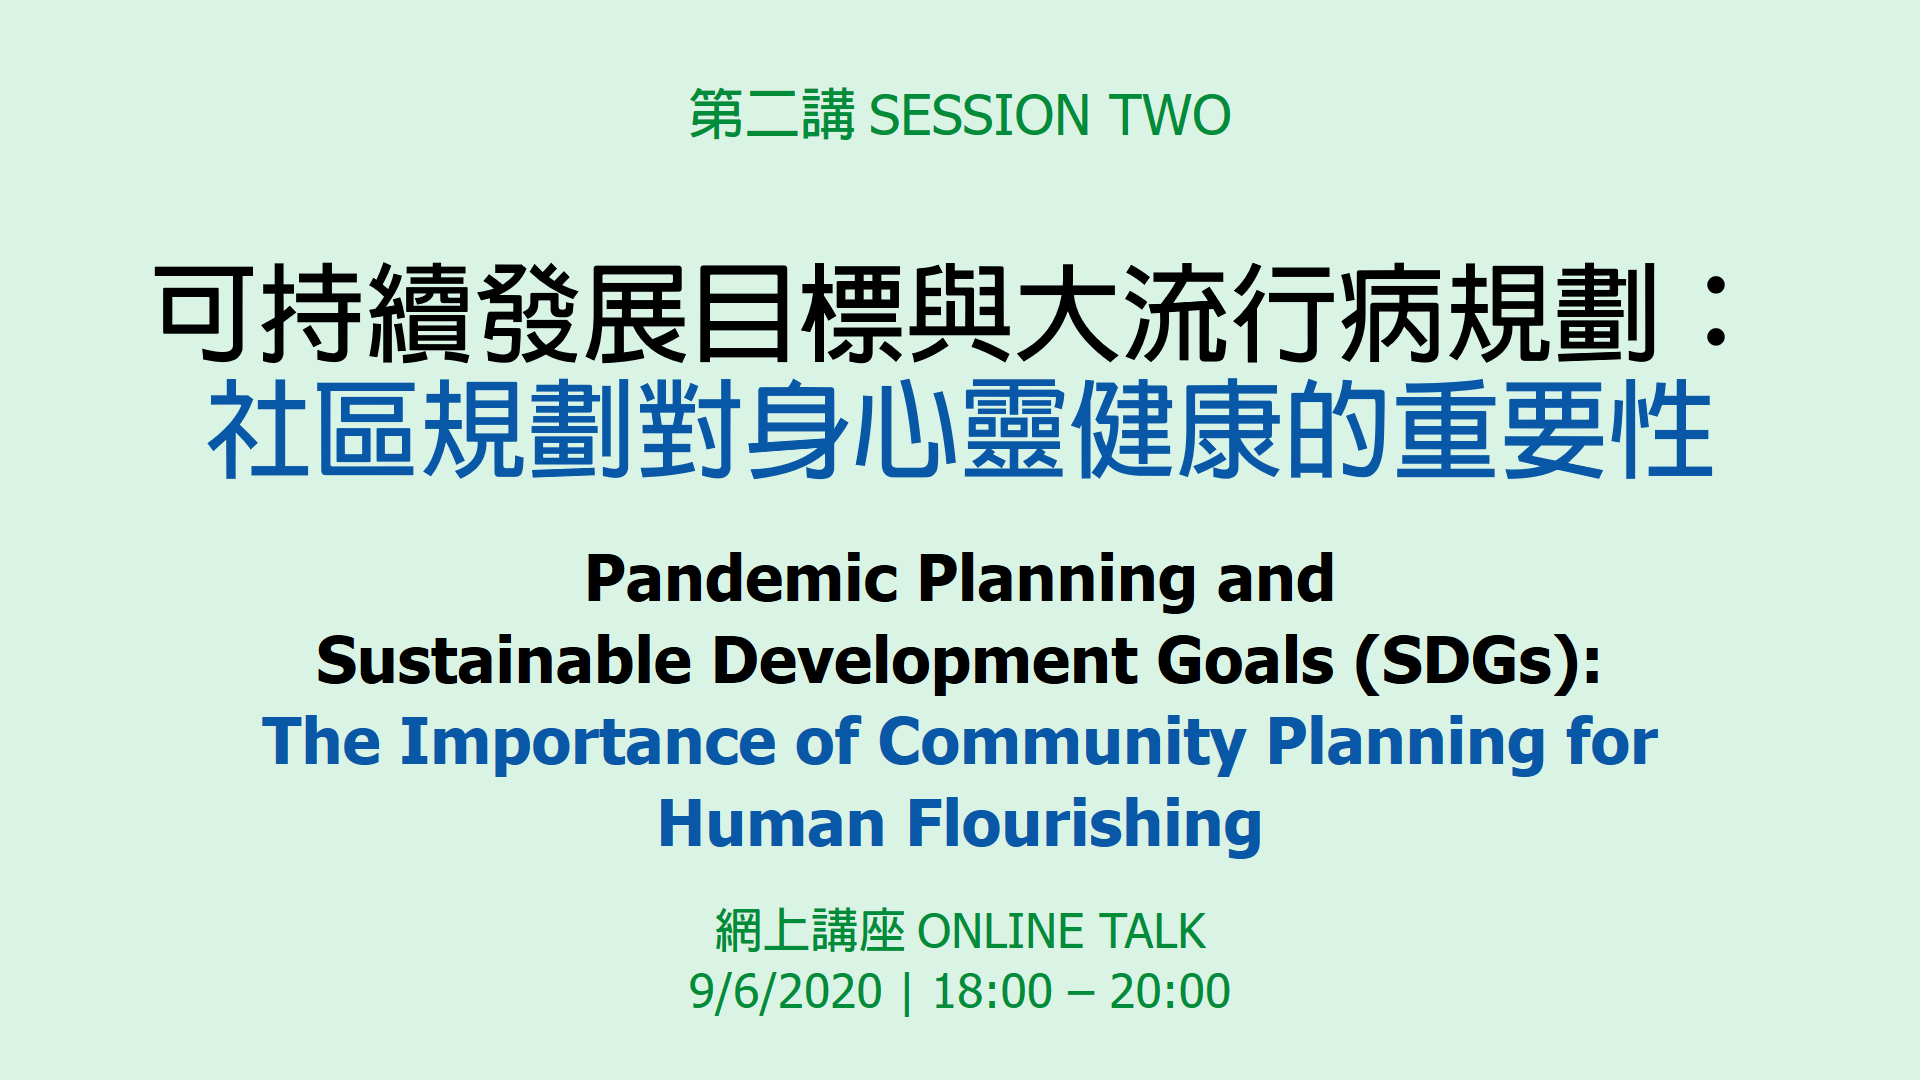 SDSNHK X GE SDG Forum 202006 session 2 Web Banner v1